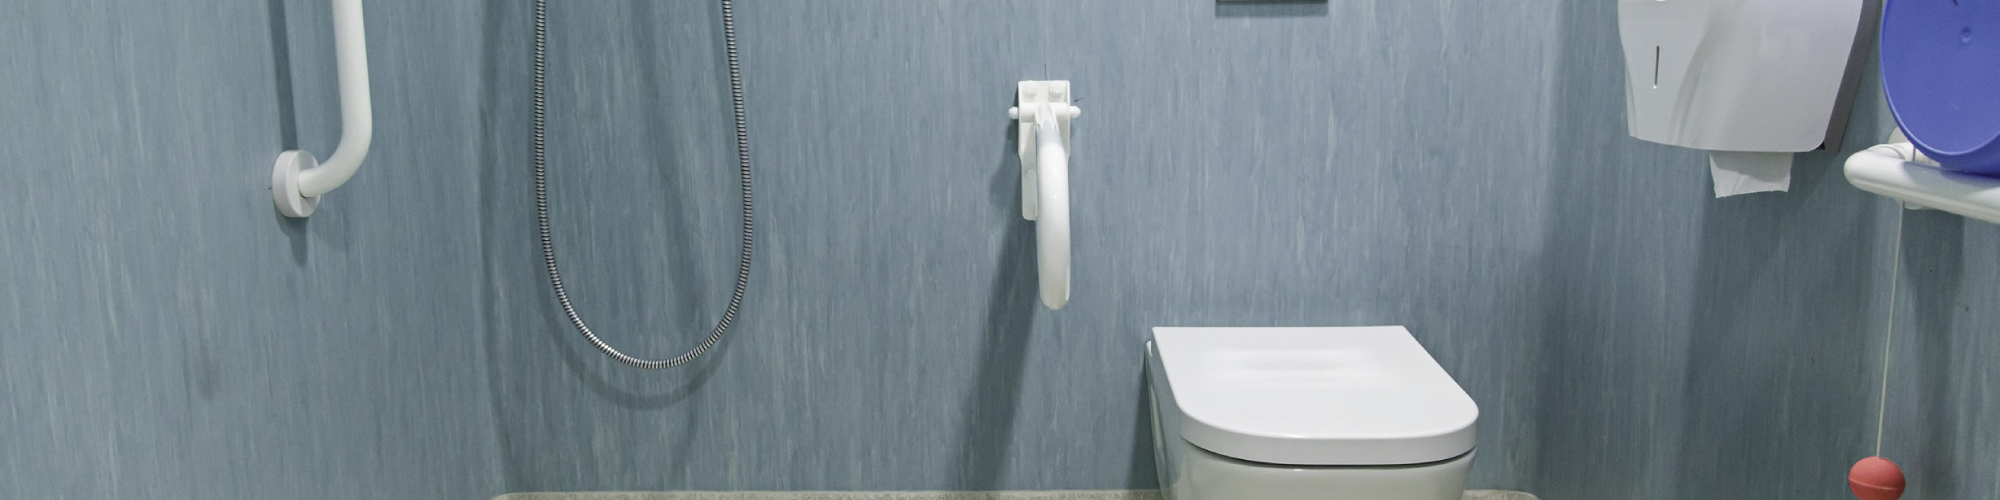 Handicap Tubs Help Bathroom Safety - Knoxville Walk-in Tubs